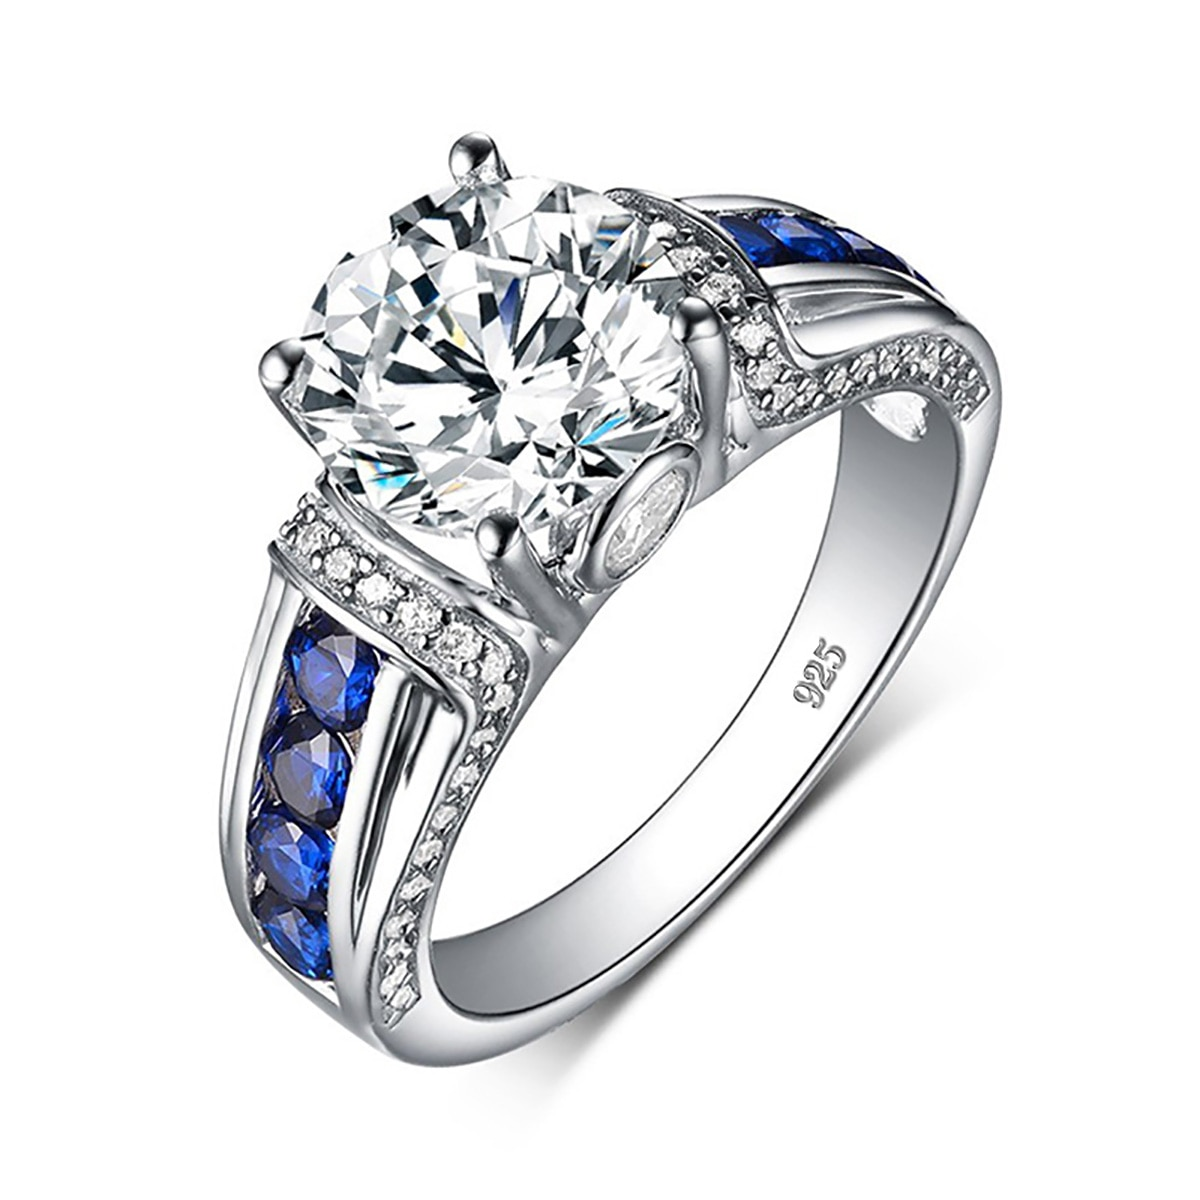 100% 925 Sterling Silver 2ct Round Moissanite Ring Diamond D Color VVS1